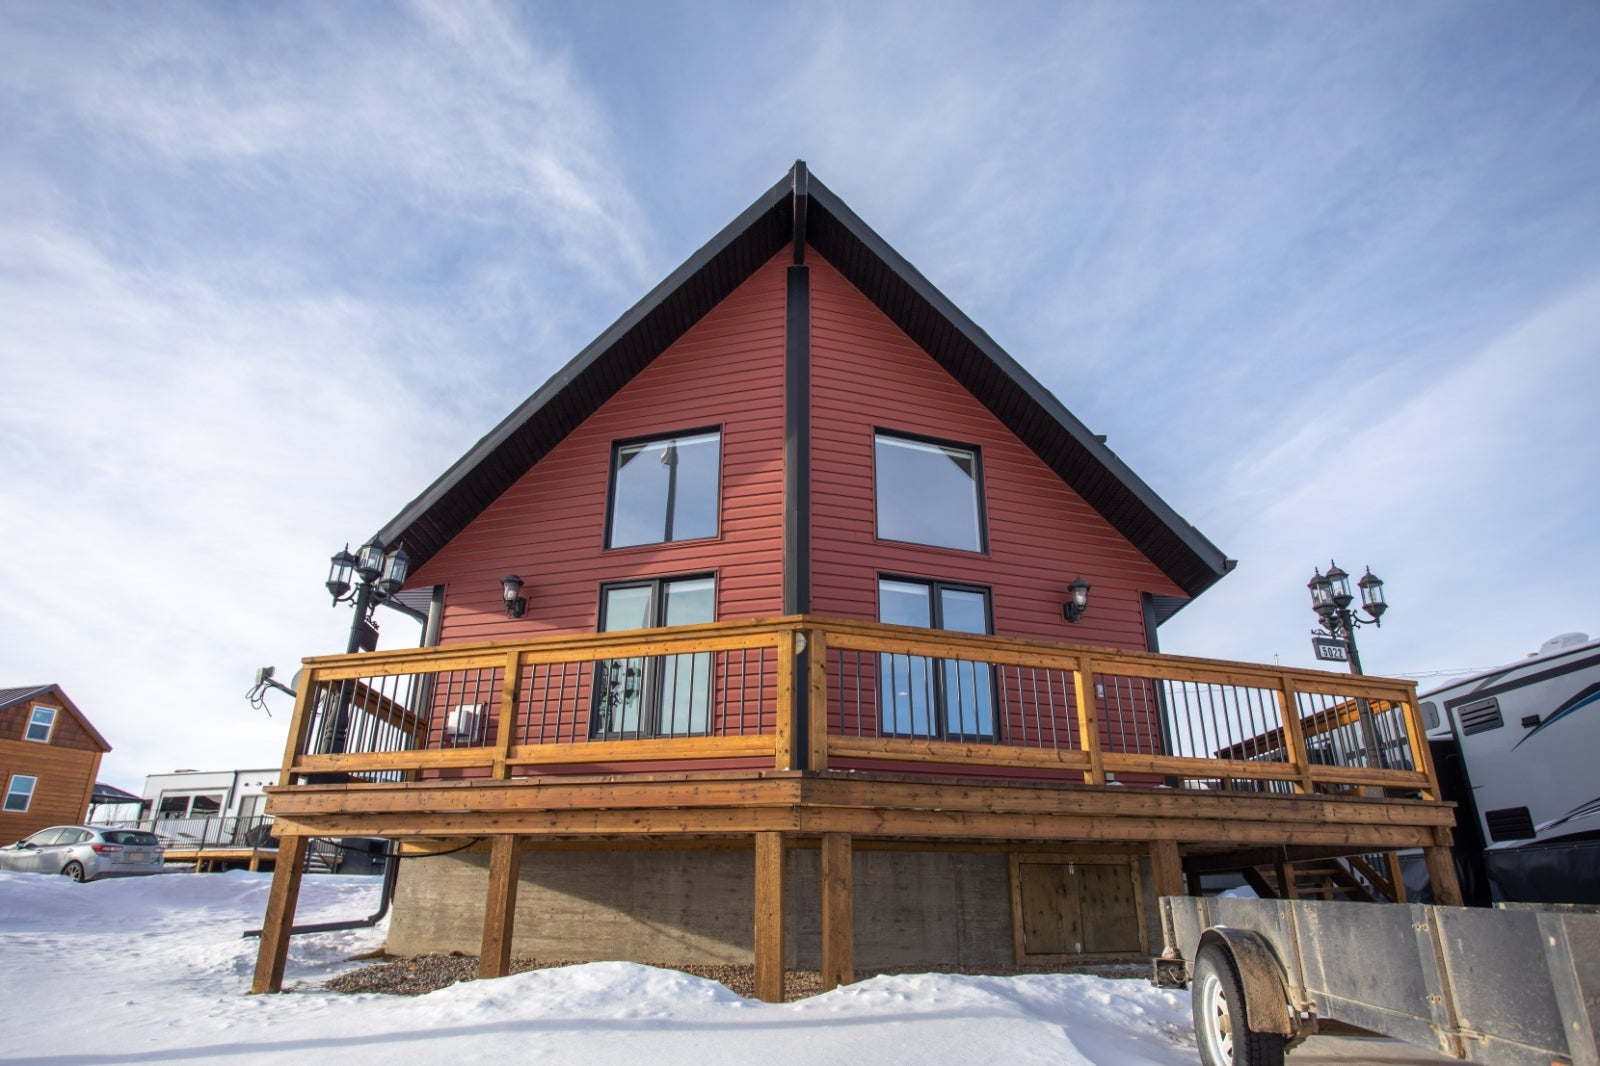 5022 25054 South Pine Lake Road, Red Deer County, AB  T0M 1R0  - Whispering Pines Condominium for sale, 2 Bedrooms  #1